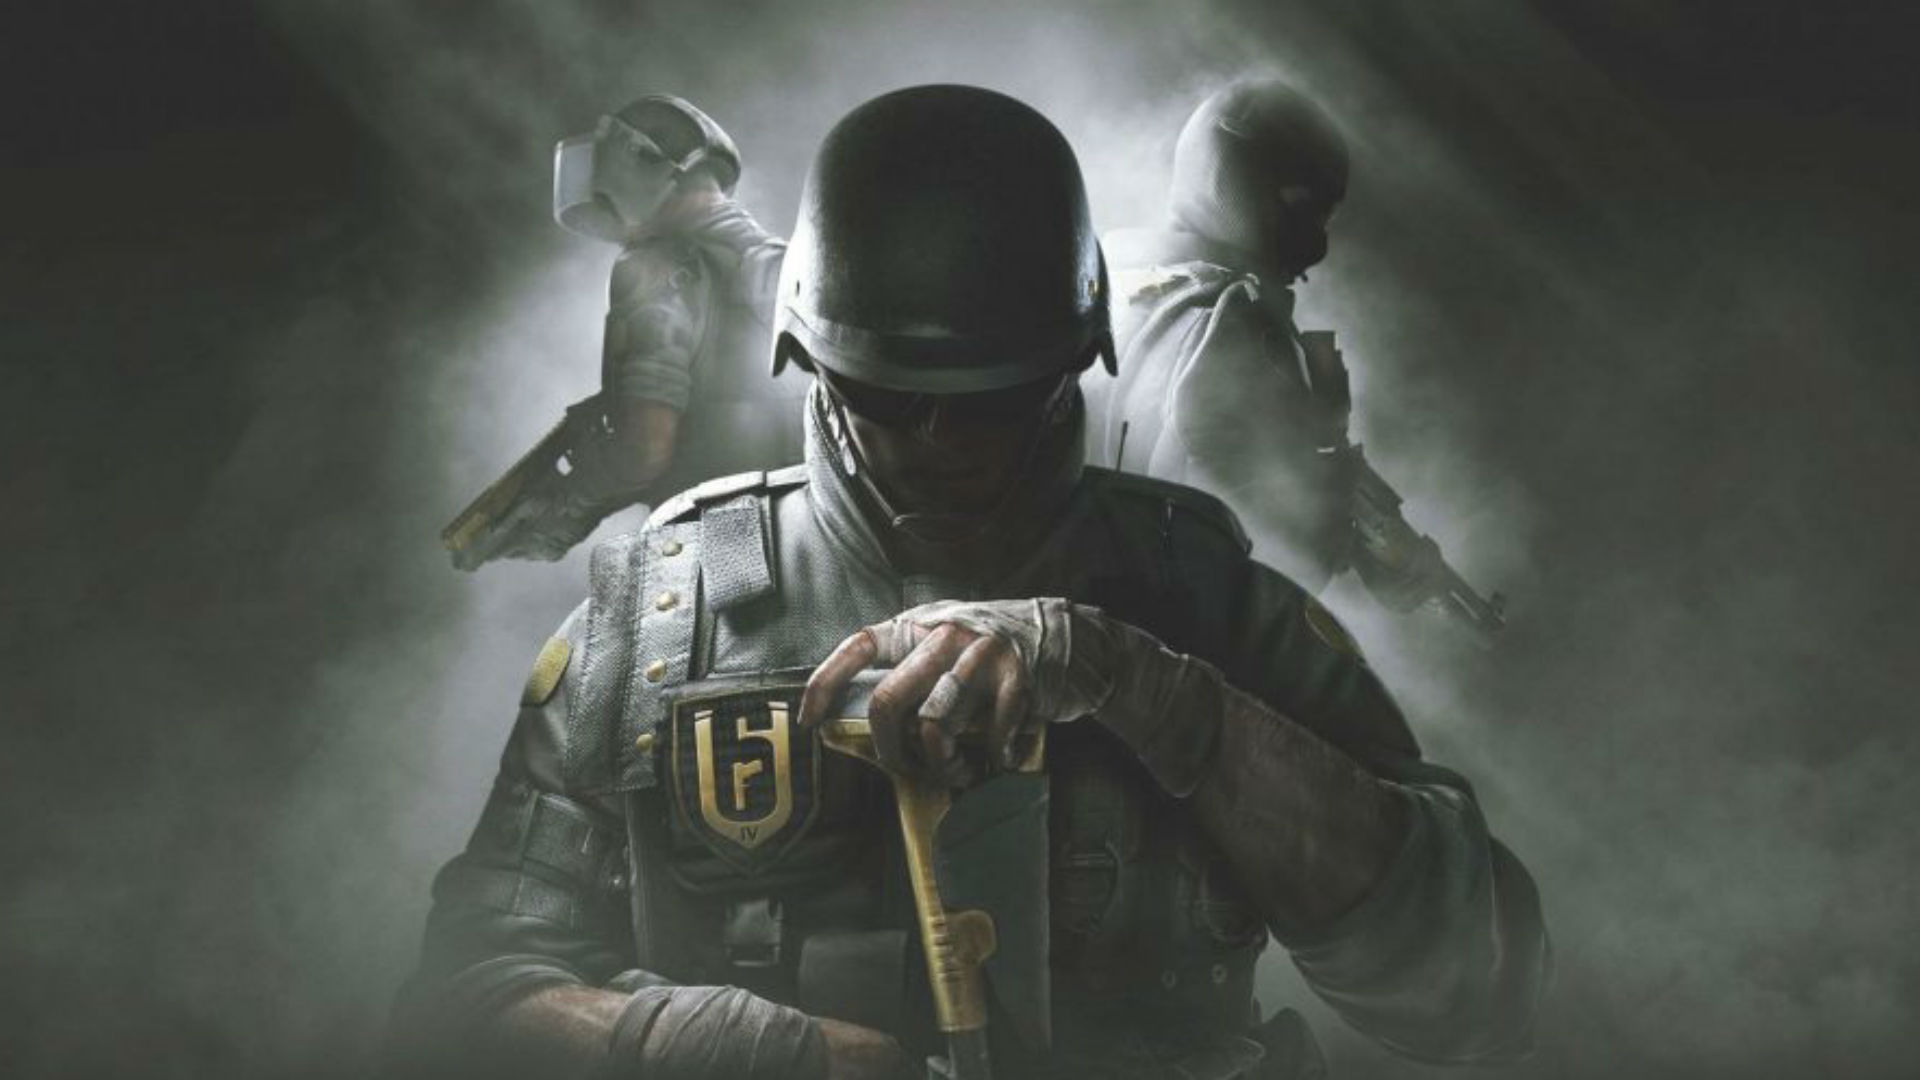 Rainbow Six Siege Year 4: operators, release date, roadmap – all the latest details